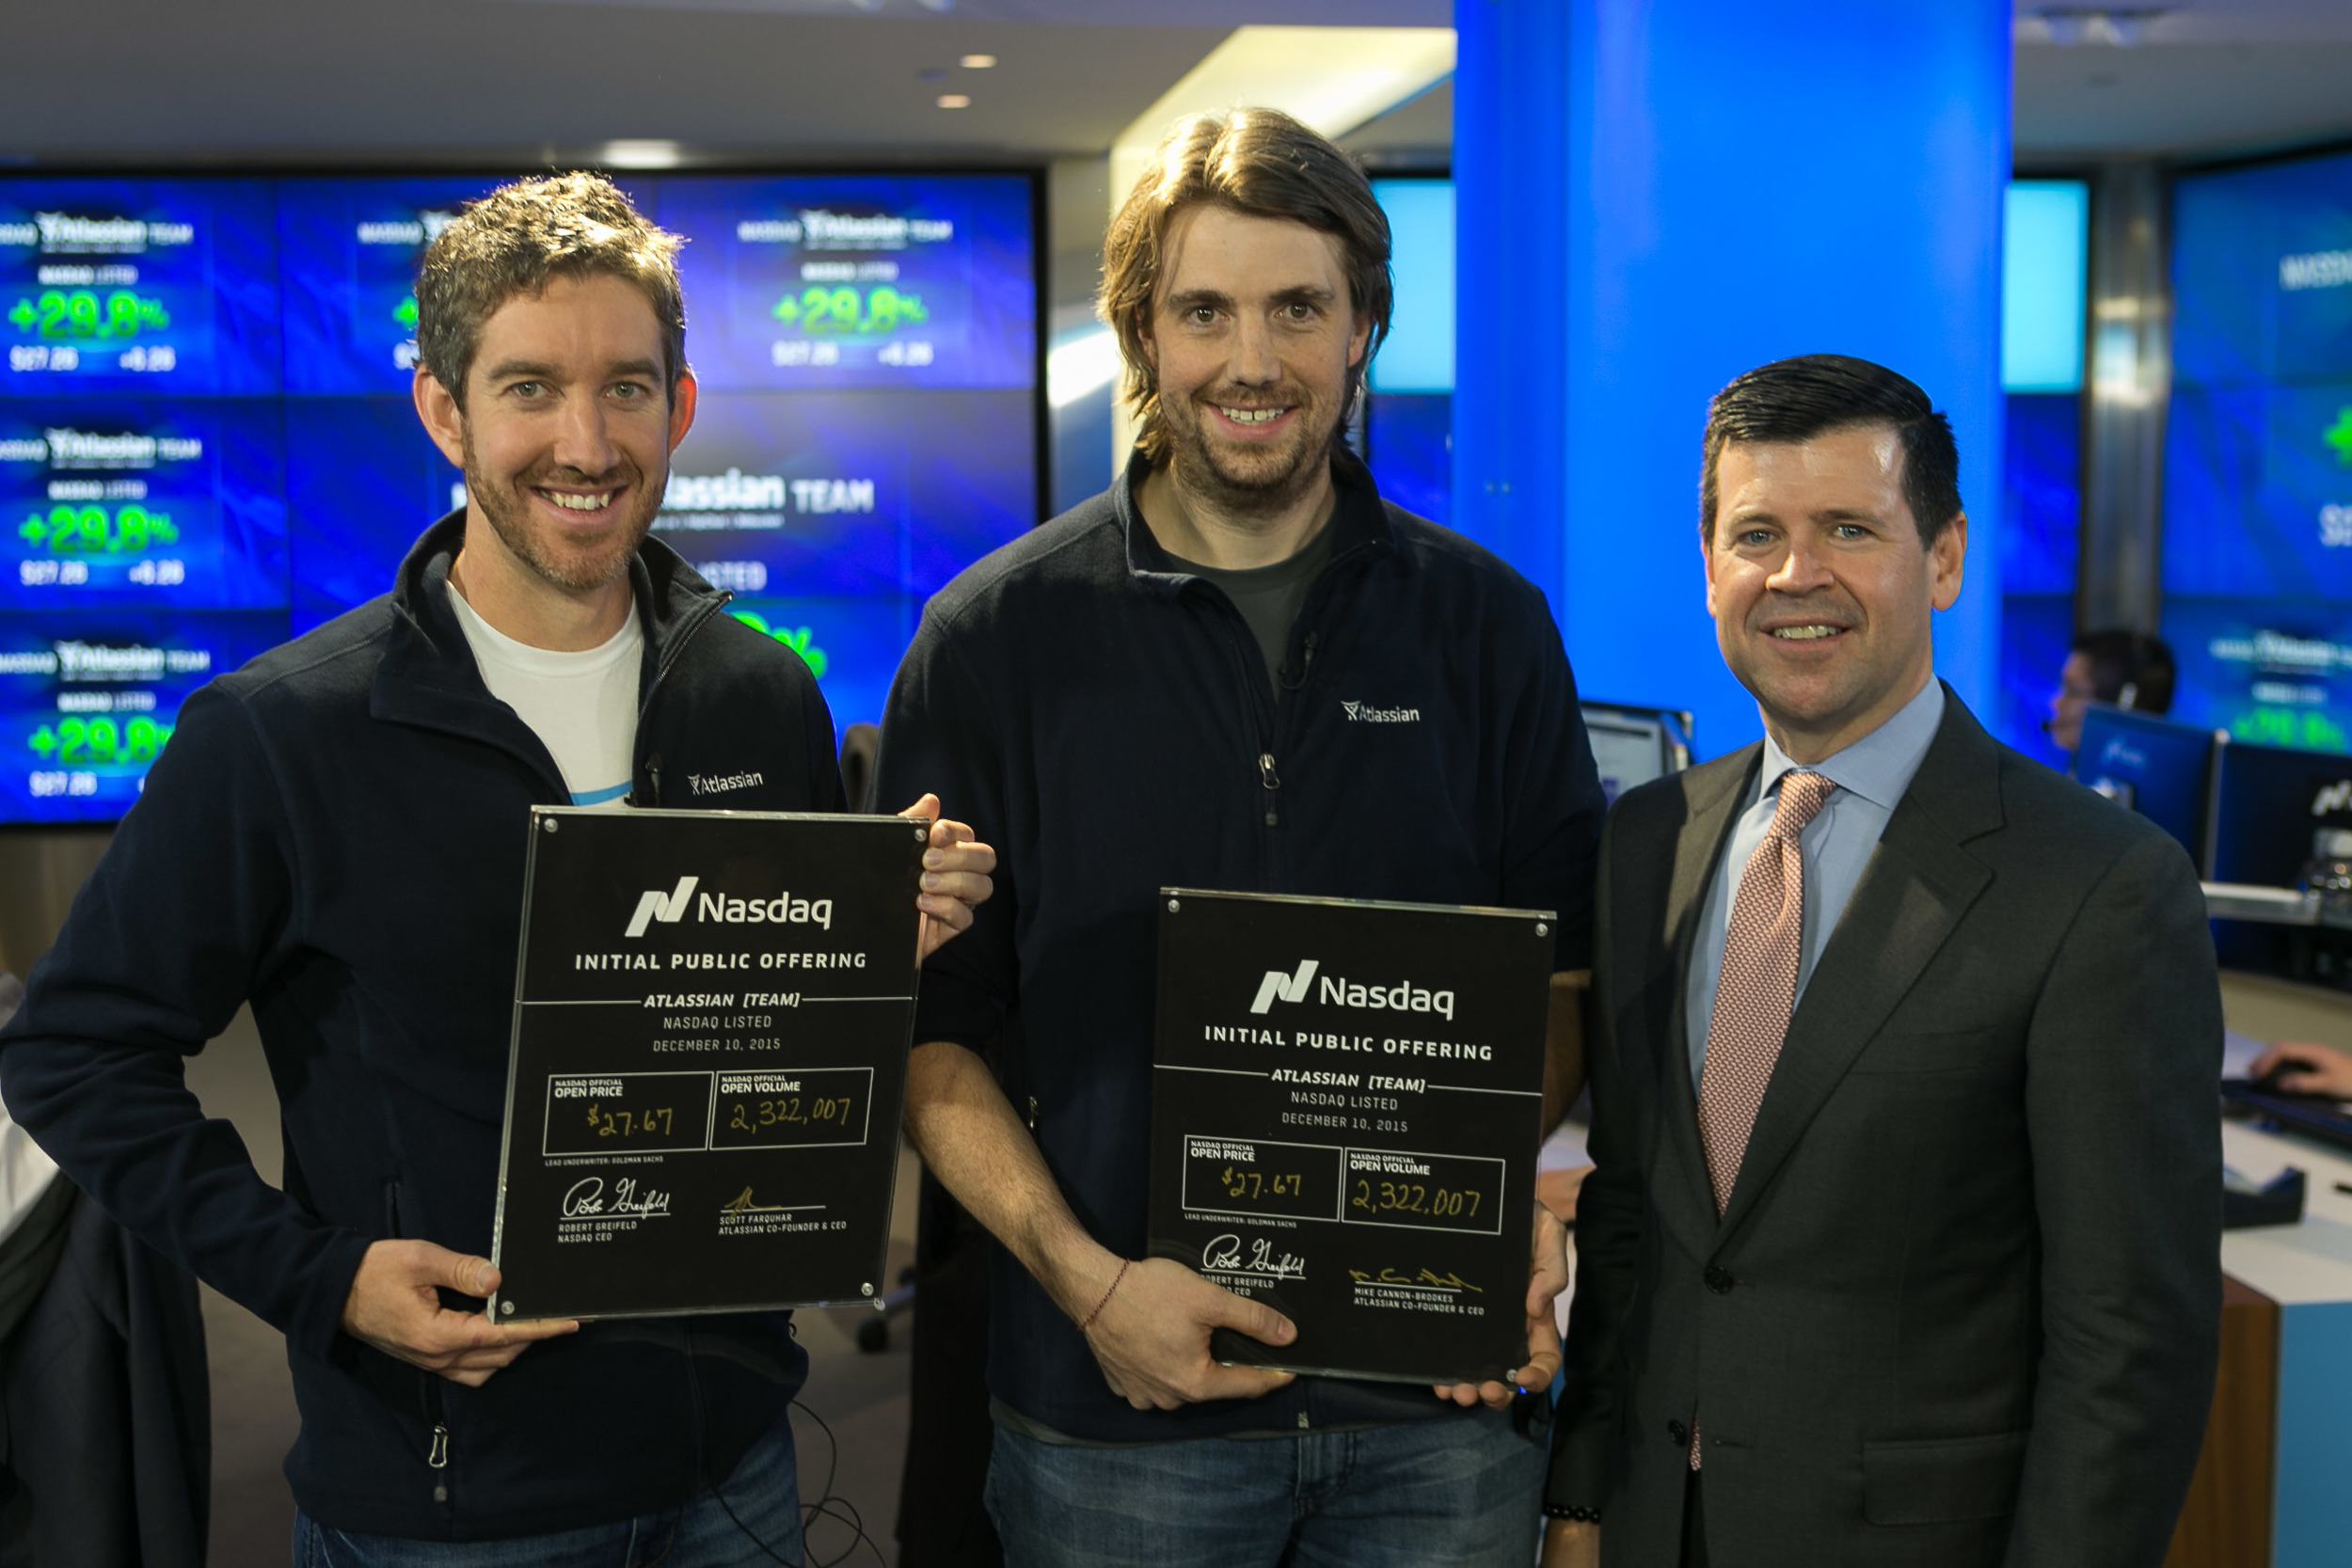 Scott and Mike with two slightly more valuable NASDAQ initial public offering certificates.